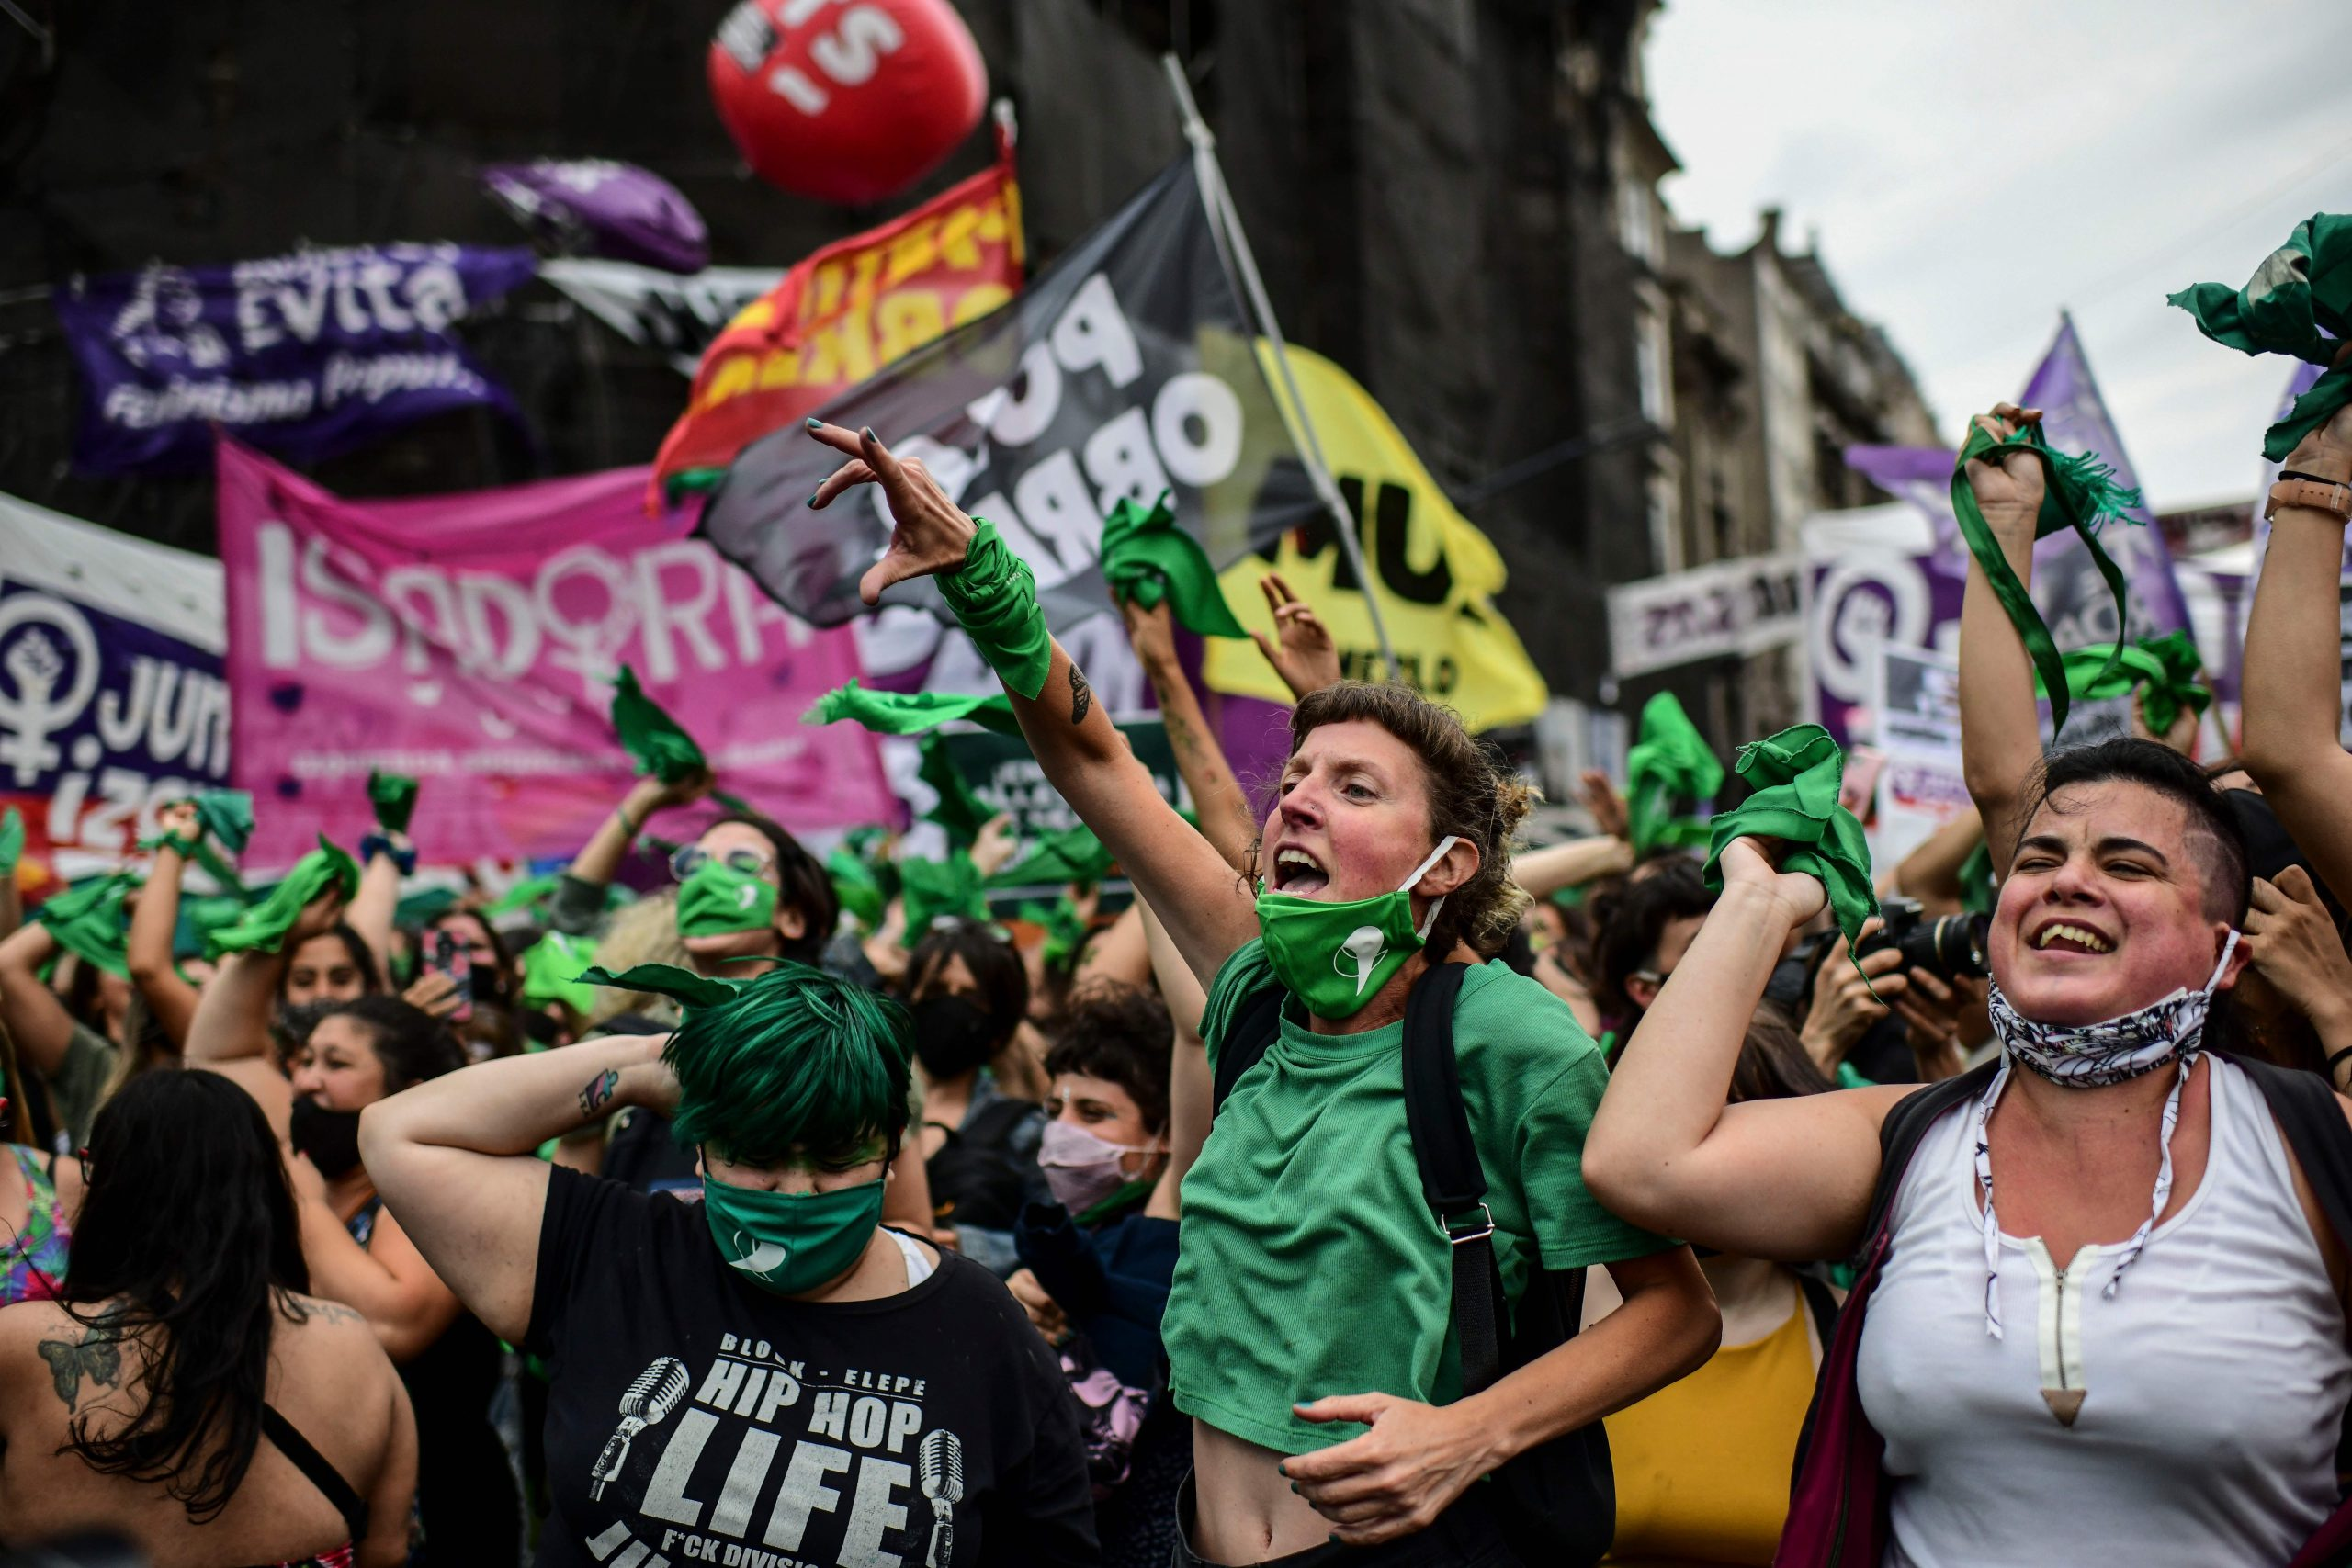 Argentina Is One Step Away From Legalizing Abortion